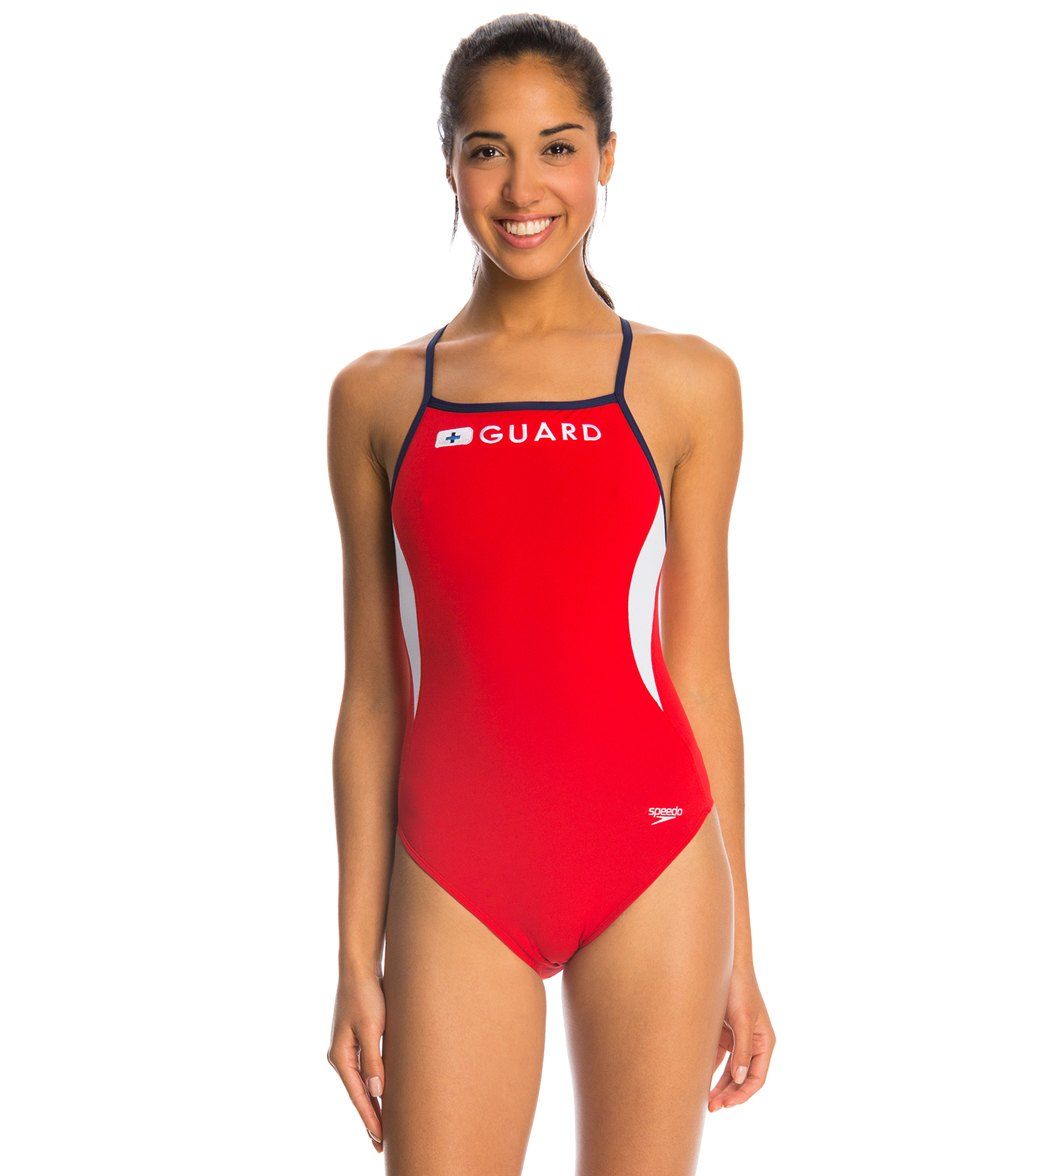 c5980e027b Speedo Lifeguard Energy Back One Piece Swimsuit at SwimOutlet.com - Free  Shipping